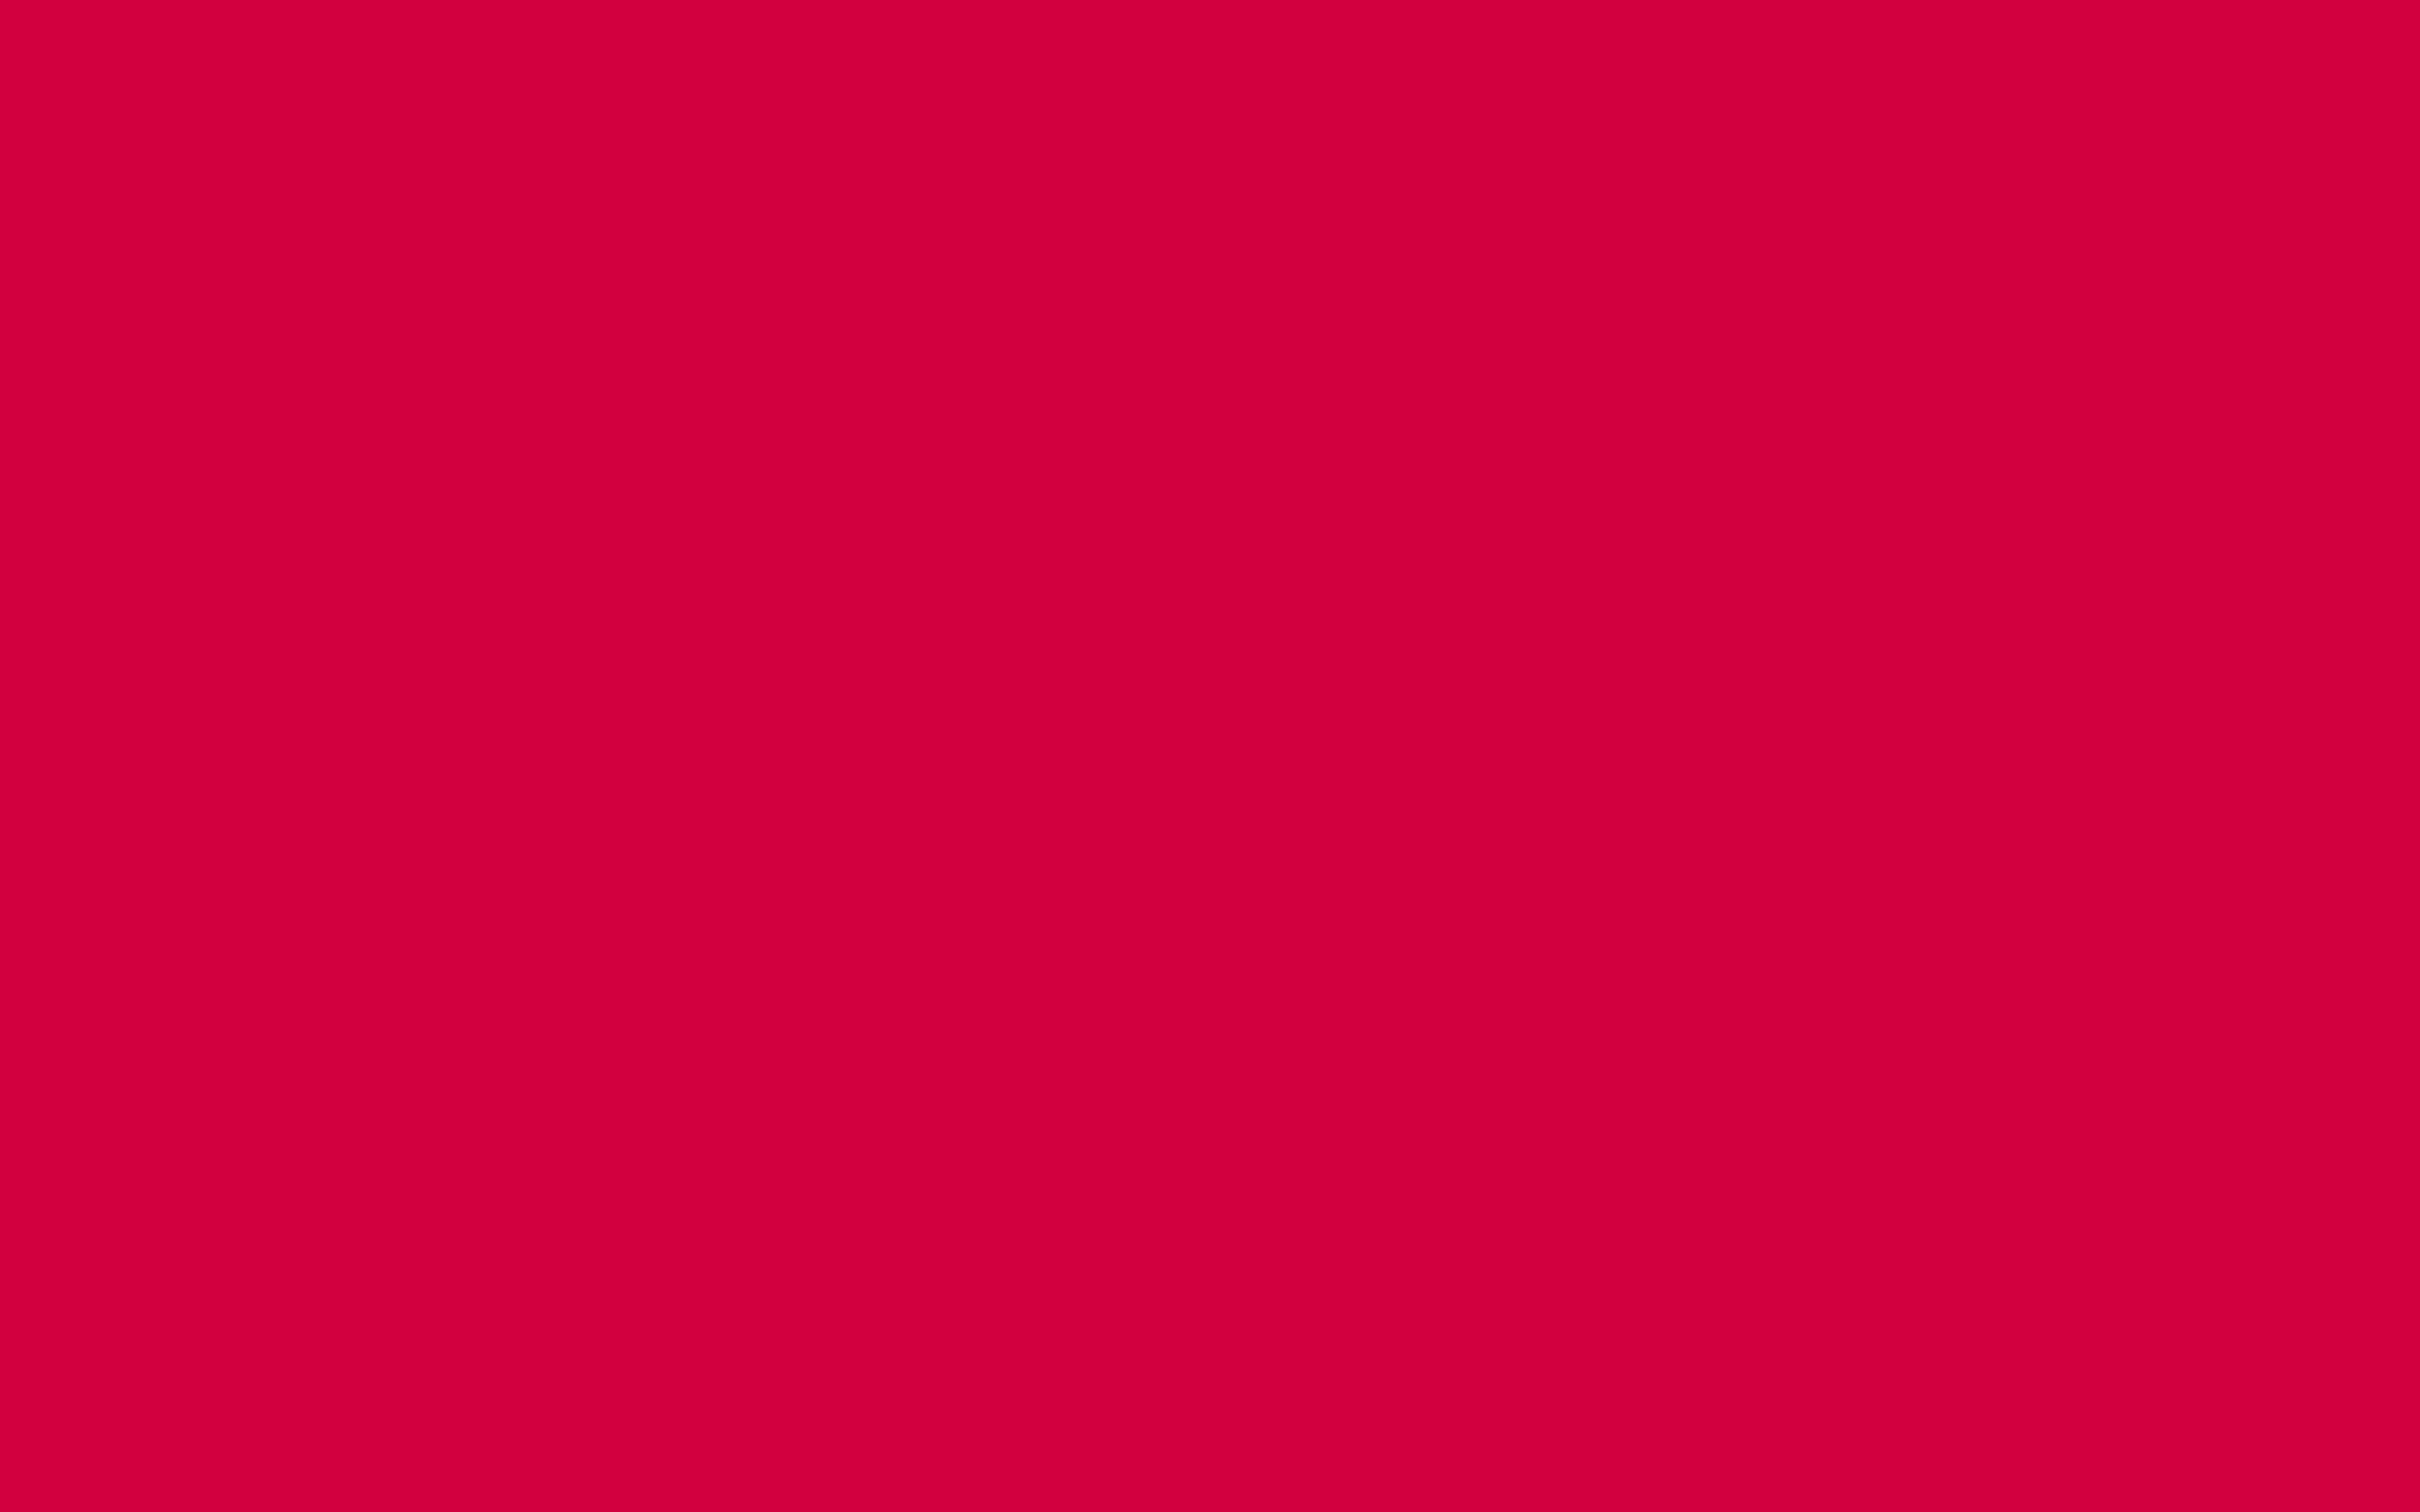 2880x1800 Utah Crimson Solid Color Background